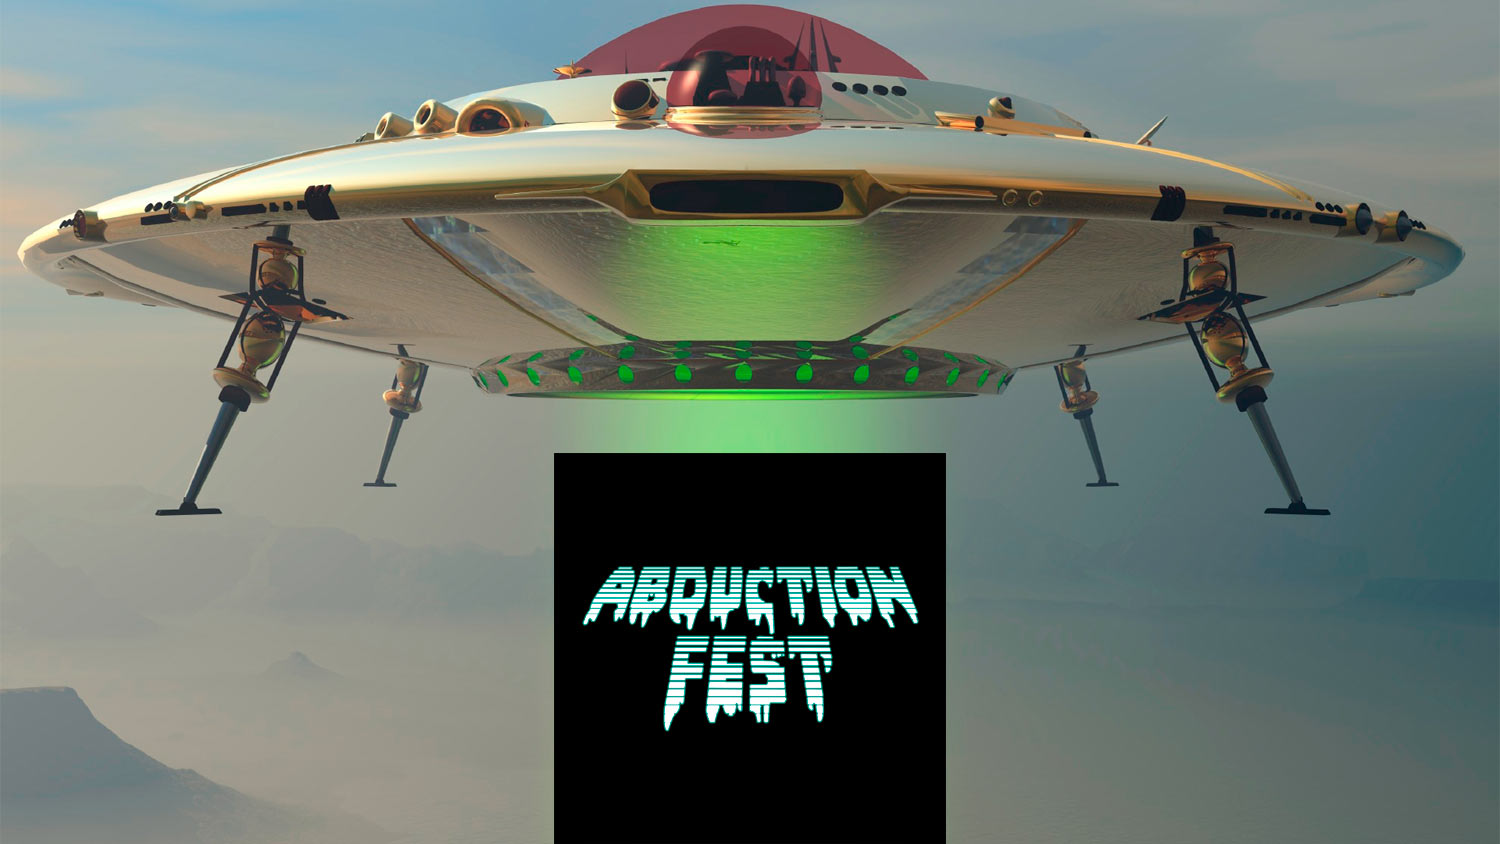 Abduction Fest, los Aliens vuelven a estar de moda